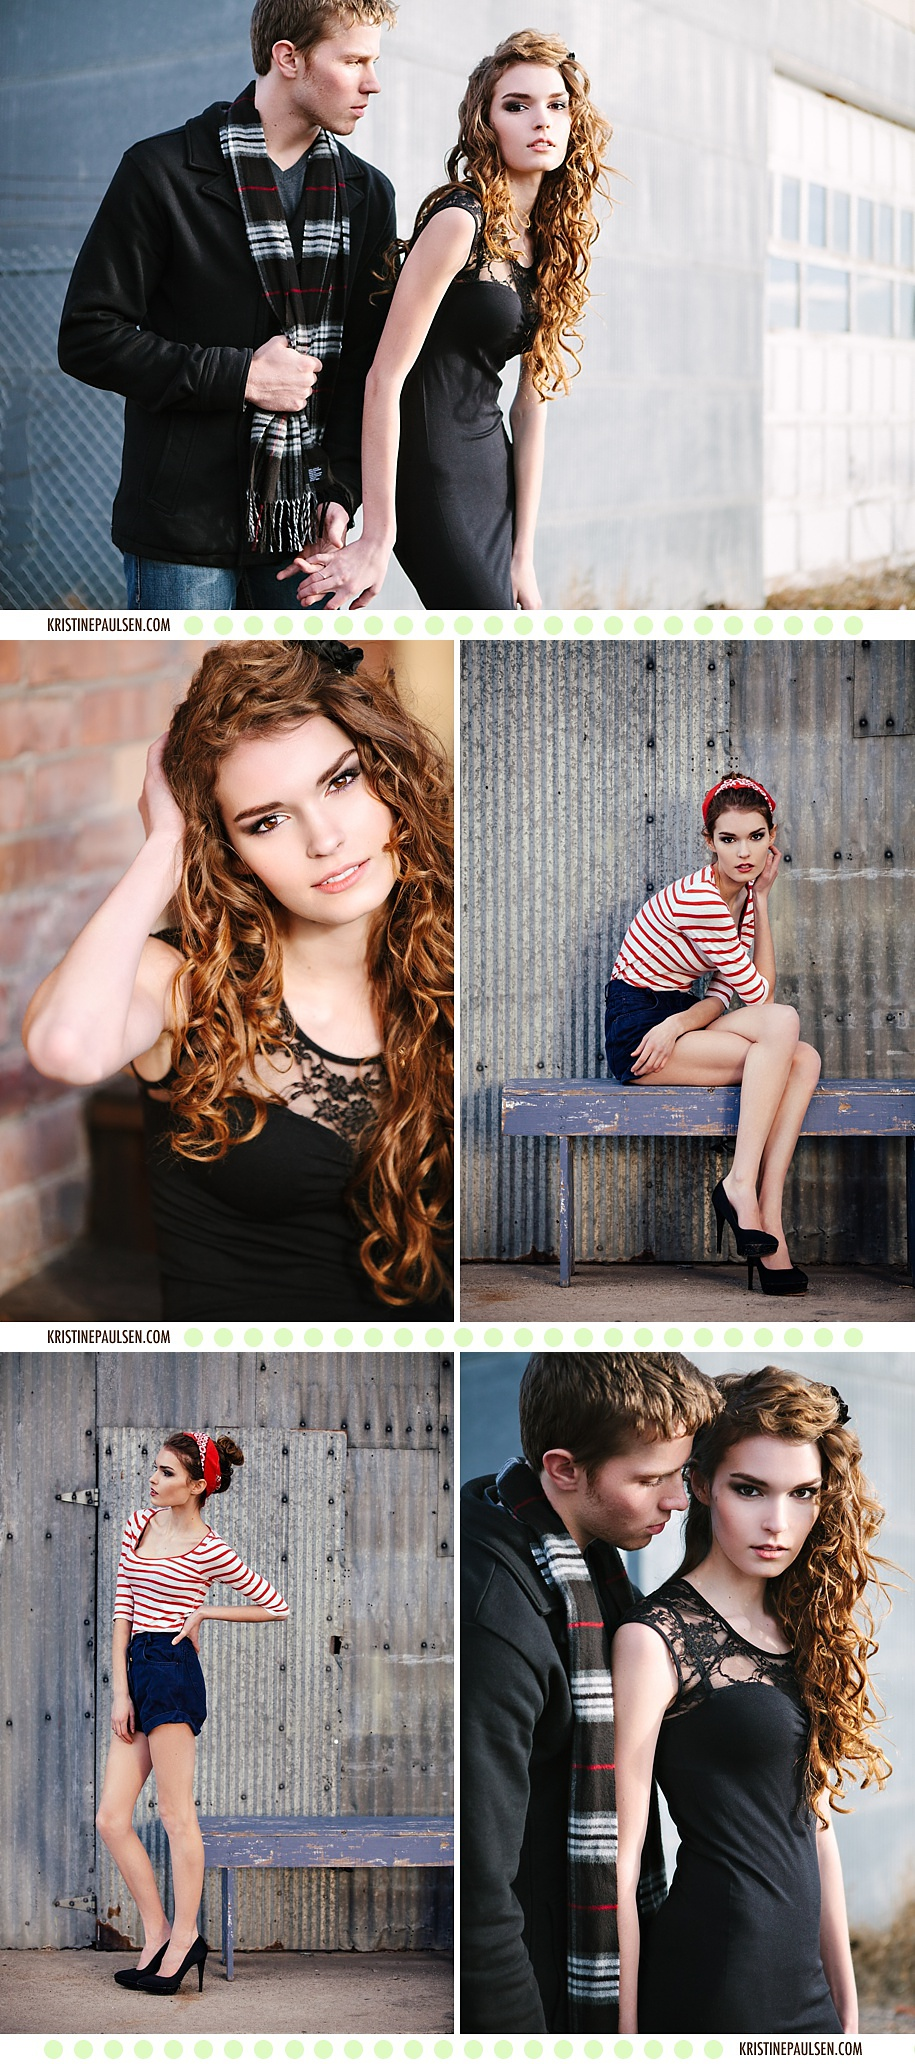 Carson-and-Maddys-Missoula-Montana-Fashion-Shoot-by-Kristine-Paulsen-Photography